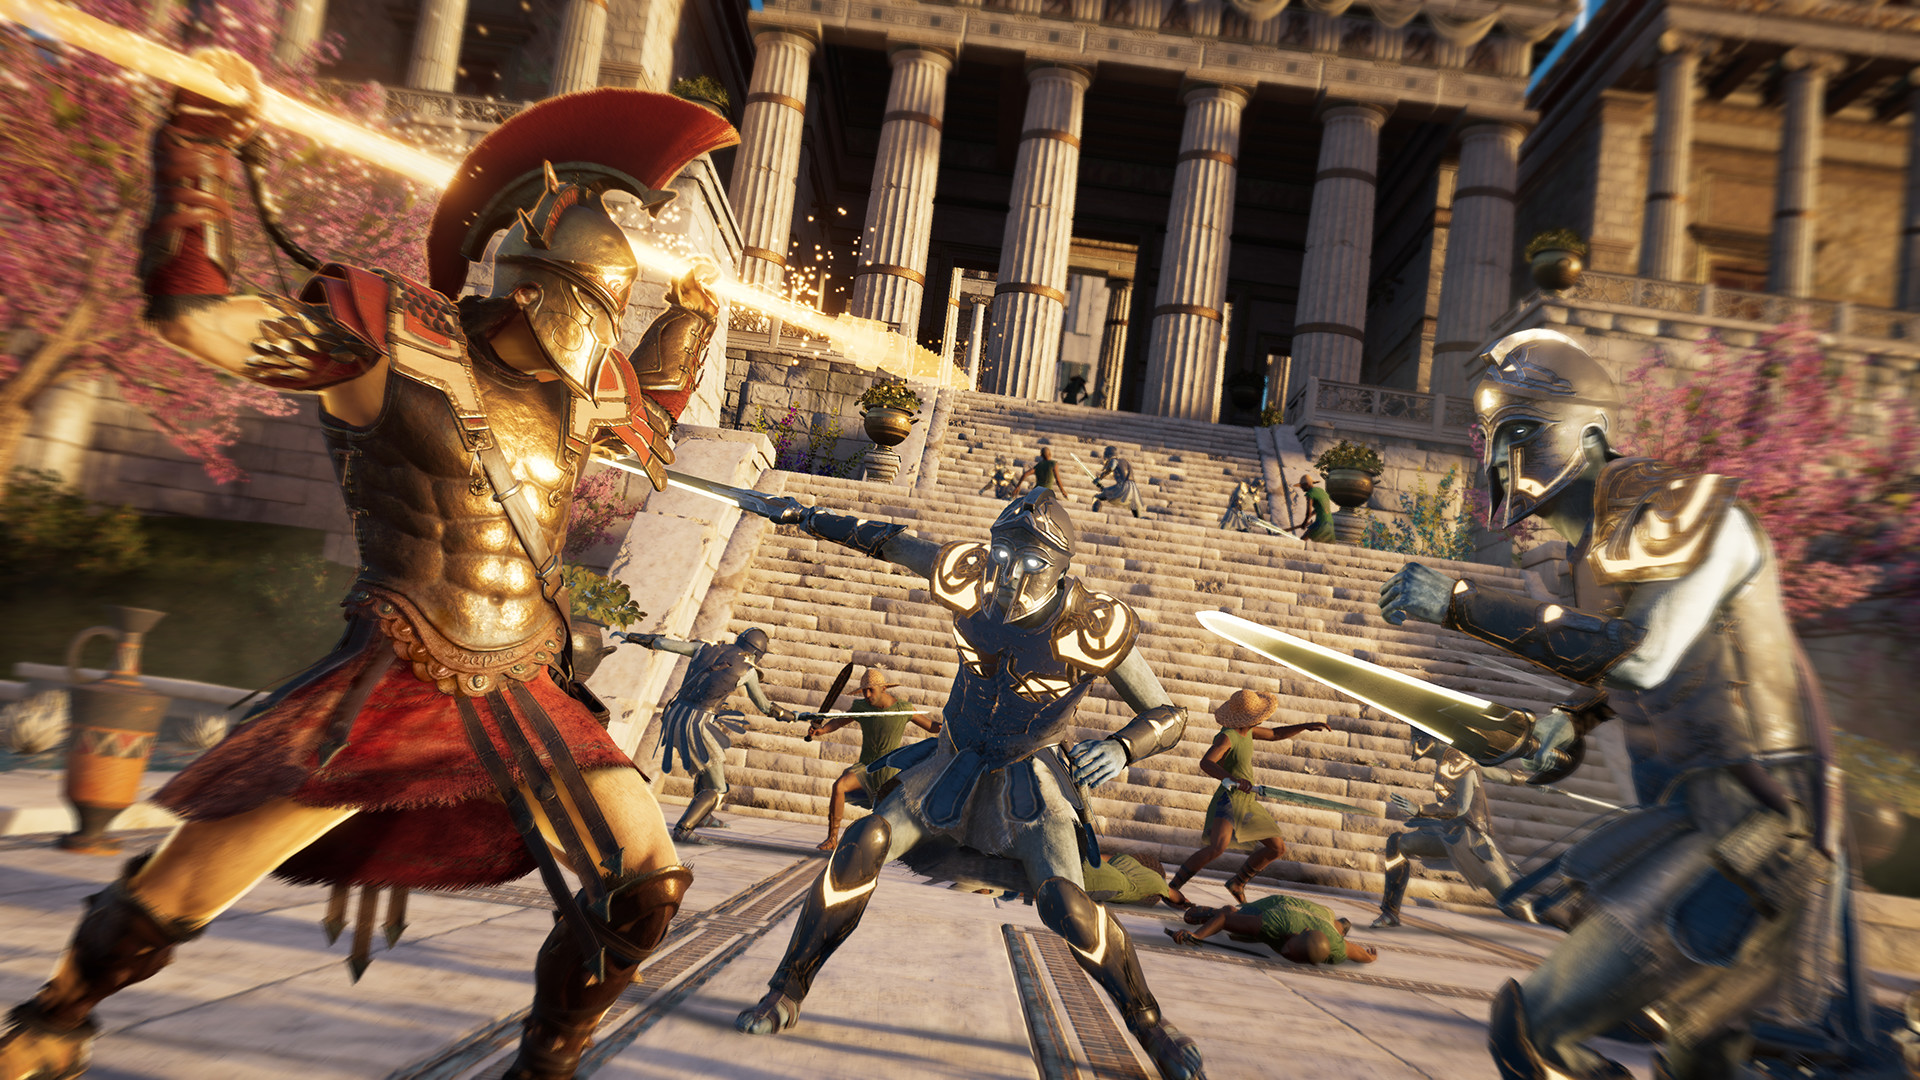 The Fate Of Atlantis Part 2 Dlc For Assassin S Creed Odyssey